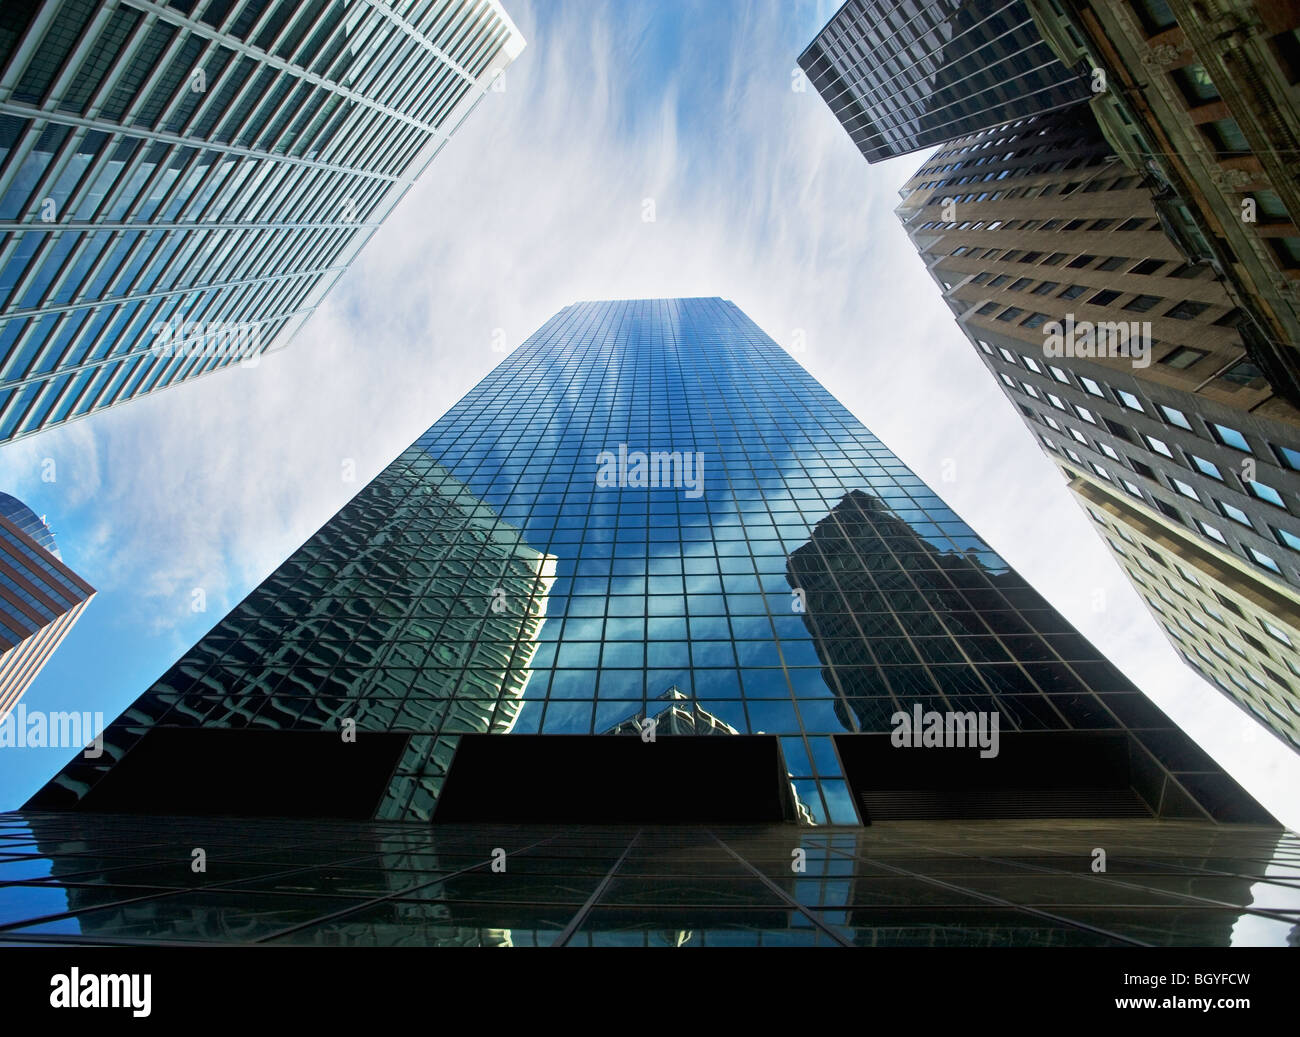 View from below skyscrapers - Stock Image